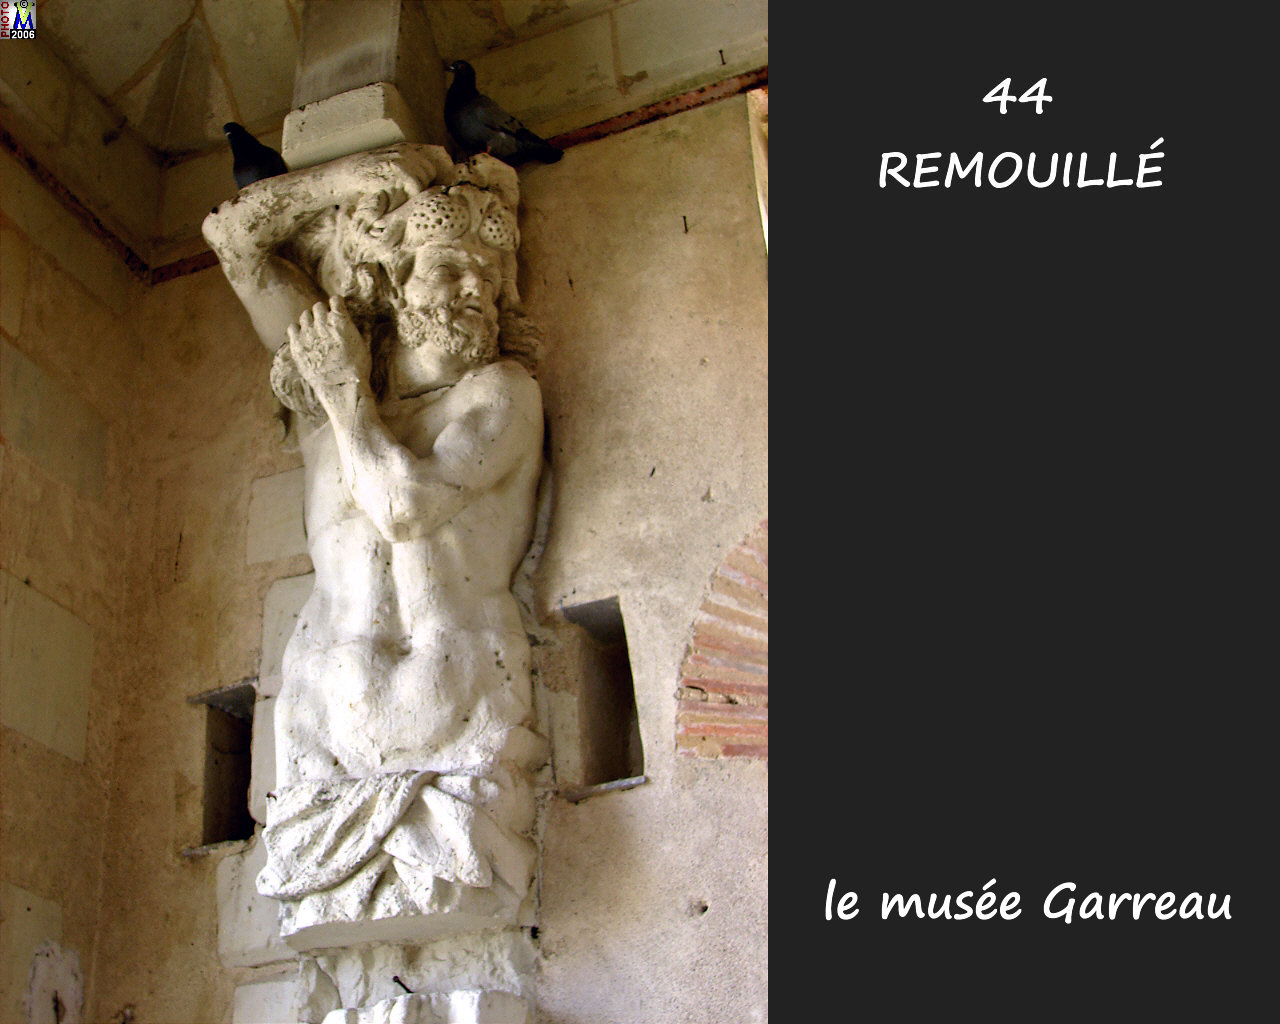 44REMOUILLE_musee_102.jpg